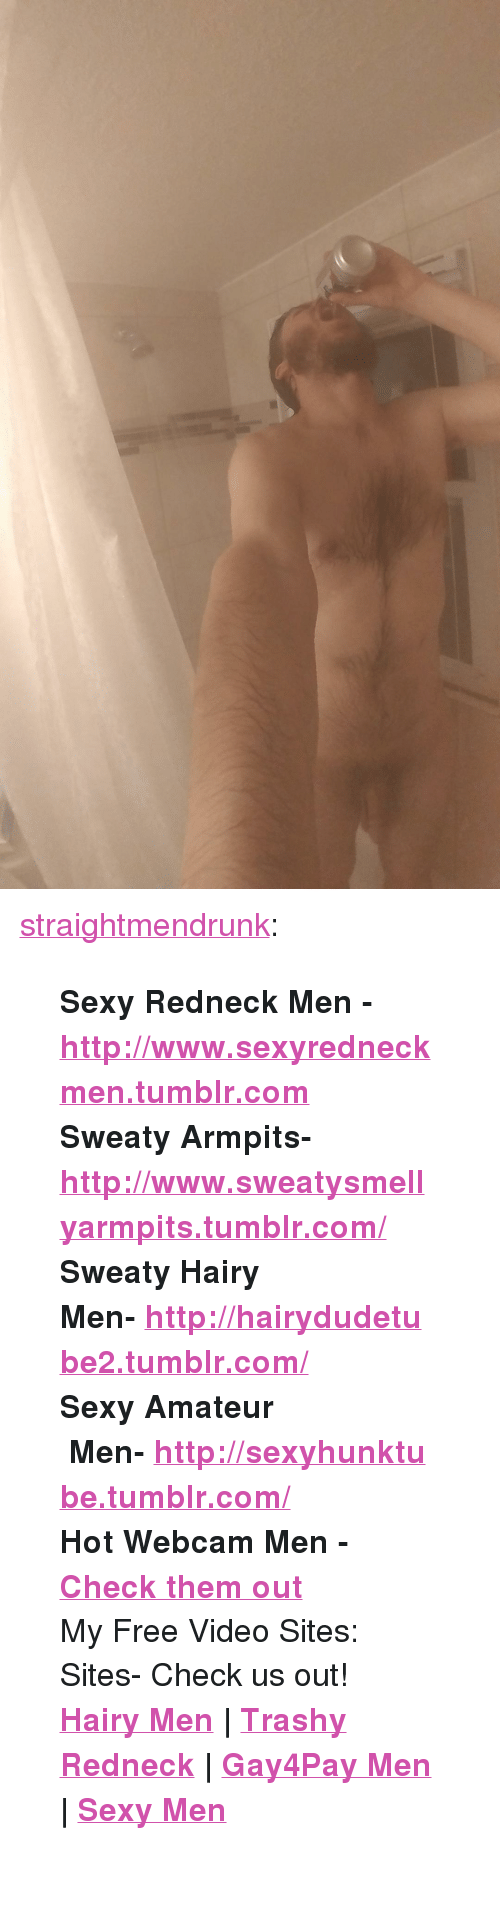 "Redneck, Sexy, and Tumblr: <p><a href=""http://straightmendrunk.tumblr.com/post/172062773540/sexy-redneck-men"" class=""tumblr_blog"">straightmendrunk</a>:</p>  <blockquote><p><b>Sexy Redneck Men - <a href=""http://www.sexyredneckmen.tumblr.com"">http://www.sexyredneckmen.tumblr.com</a></b><br/><b>Sweaty Armpits- <a href=""http://www.sweatysmellyarmpits.tumblr.com//"">http://www.sweatysmellyarmpits.tumblr.com/</a></b><br/><b><b>Sweaty Hairy Men- <a href=""http://www.hotworkmen.tumblr.com/""></a><a href=""http://hairydudetube2.tumblr.com/"">http://hairydudetube2.tumblr.com/</a></b><br/></b><b><b>Sexy Amateur  Men- <a href=""http://sexyhunktube.tumblr.com/"">http://sexyhunktube.tumblr.com/</a></b></b>  </p><p><b>Hot Webcam Men - <a href=""http://bit.ly/2bI0ZjY"">Check them out</a></b></p><p>   My Free Video Sites:  Sites- Check us out!</p><p><b><a href=""http://www.hairydudetube.com"">Hairy Men</a> 